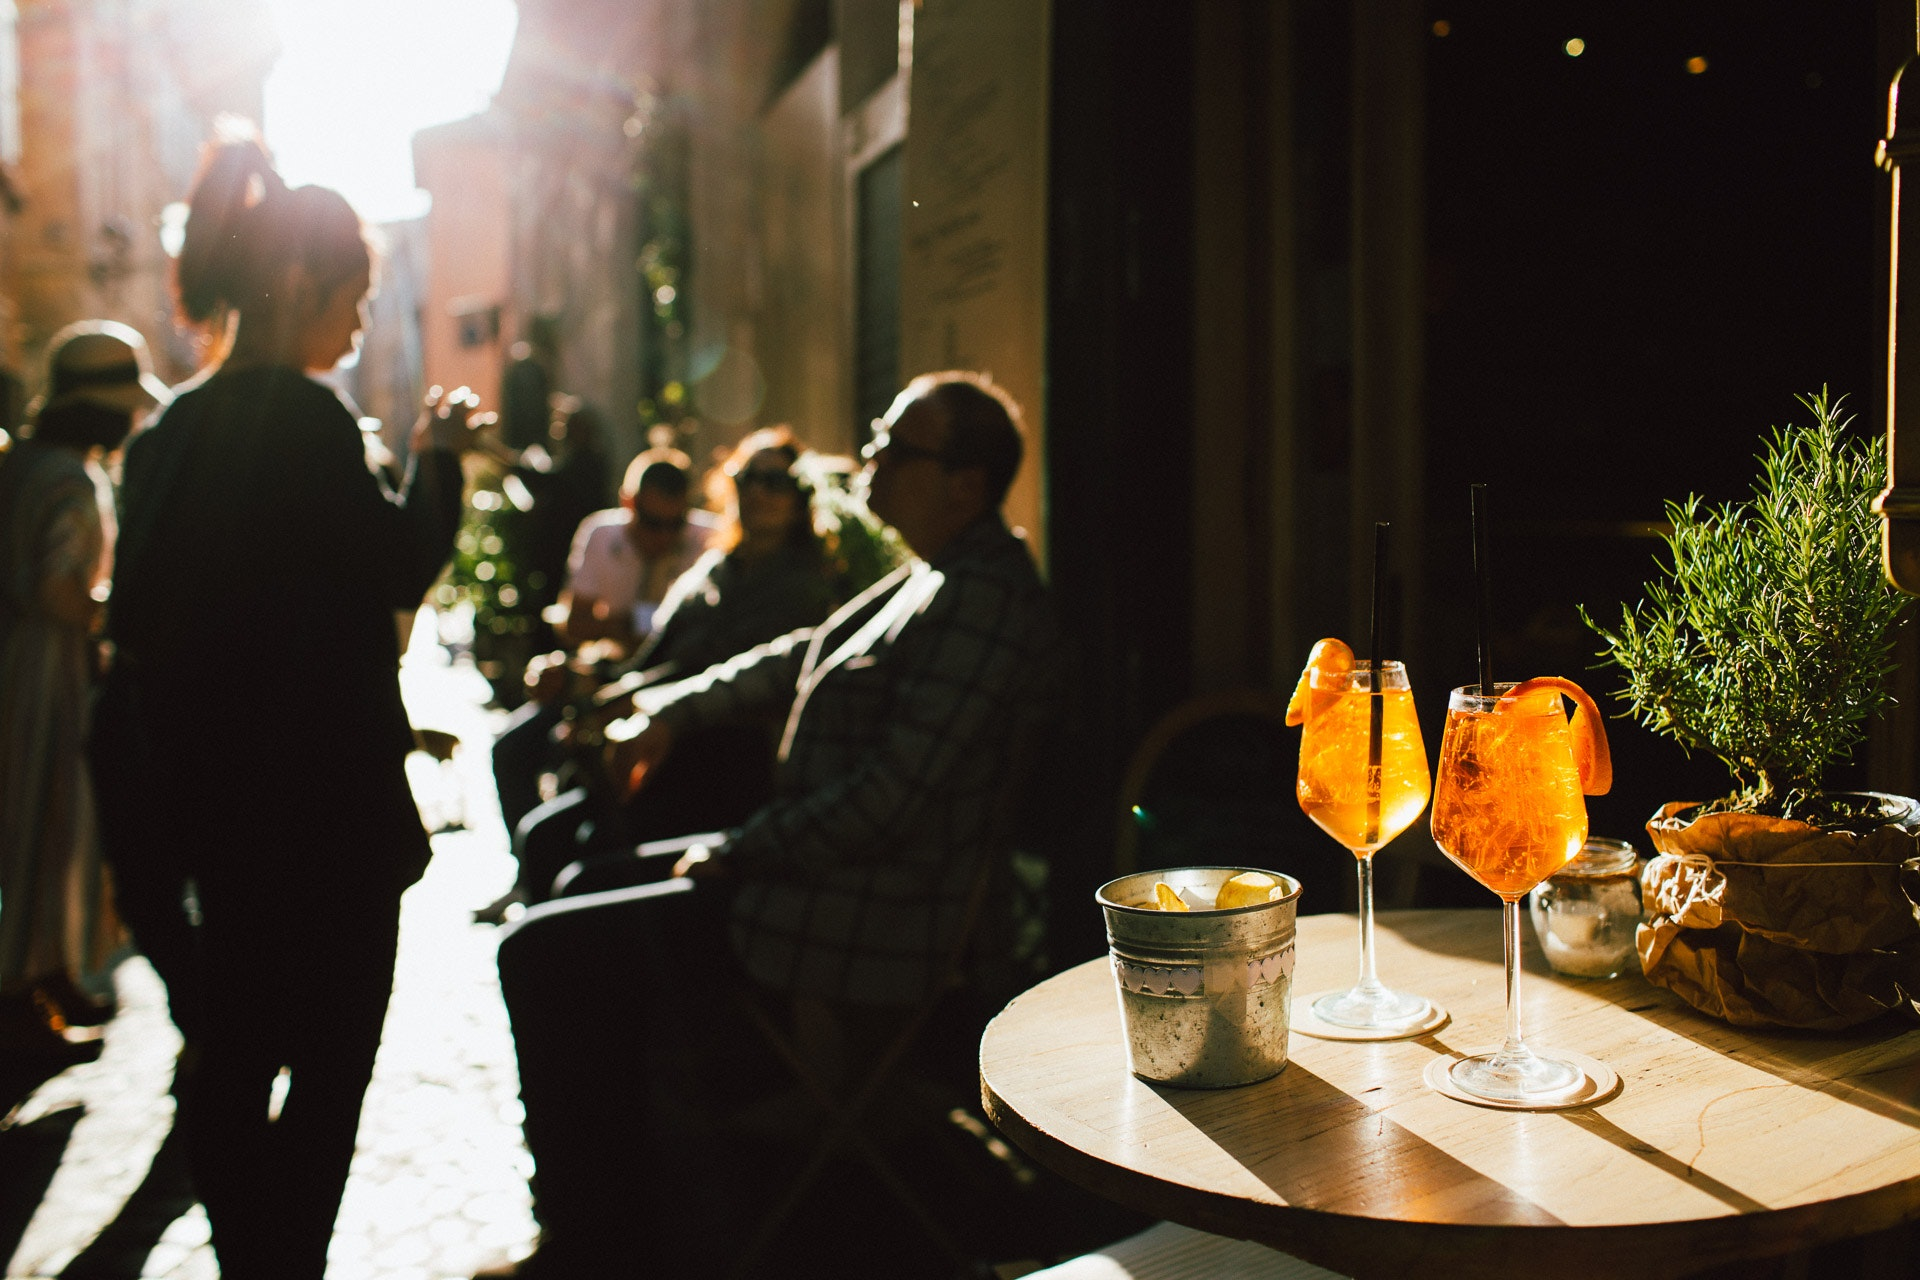 The aperol spritz: my daily indulgence in Rome. Photo by Tanveer Badal